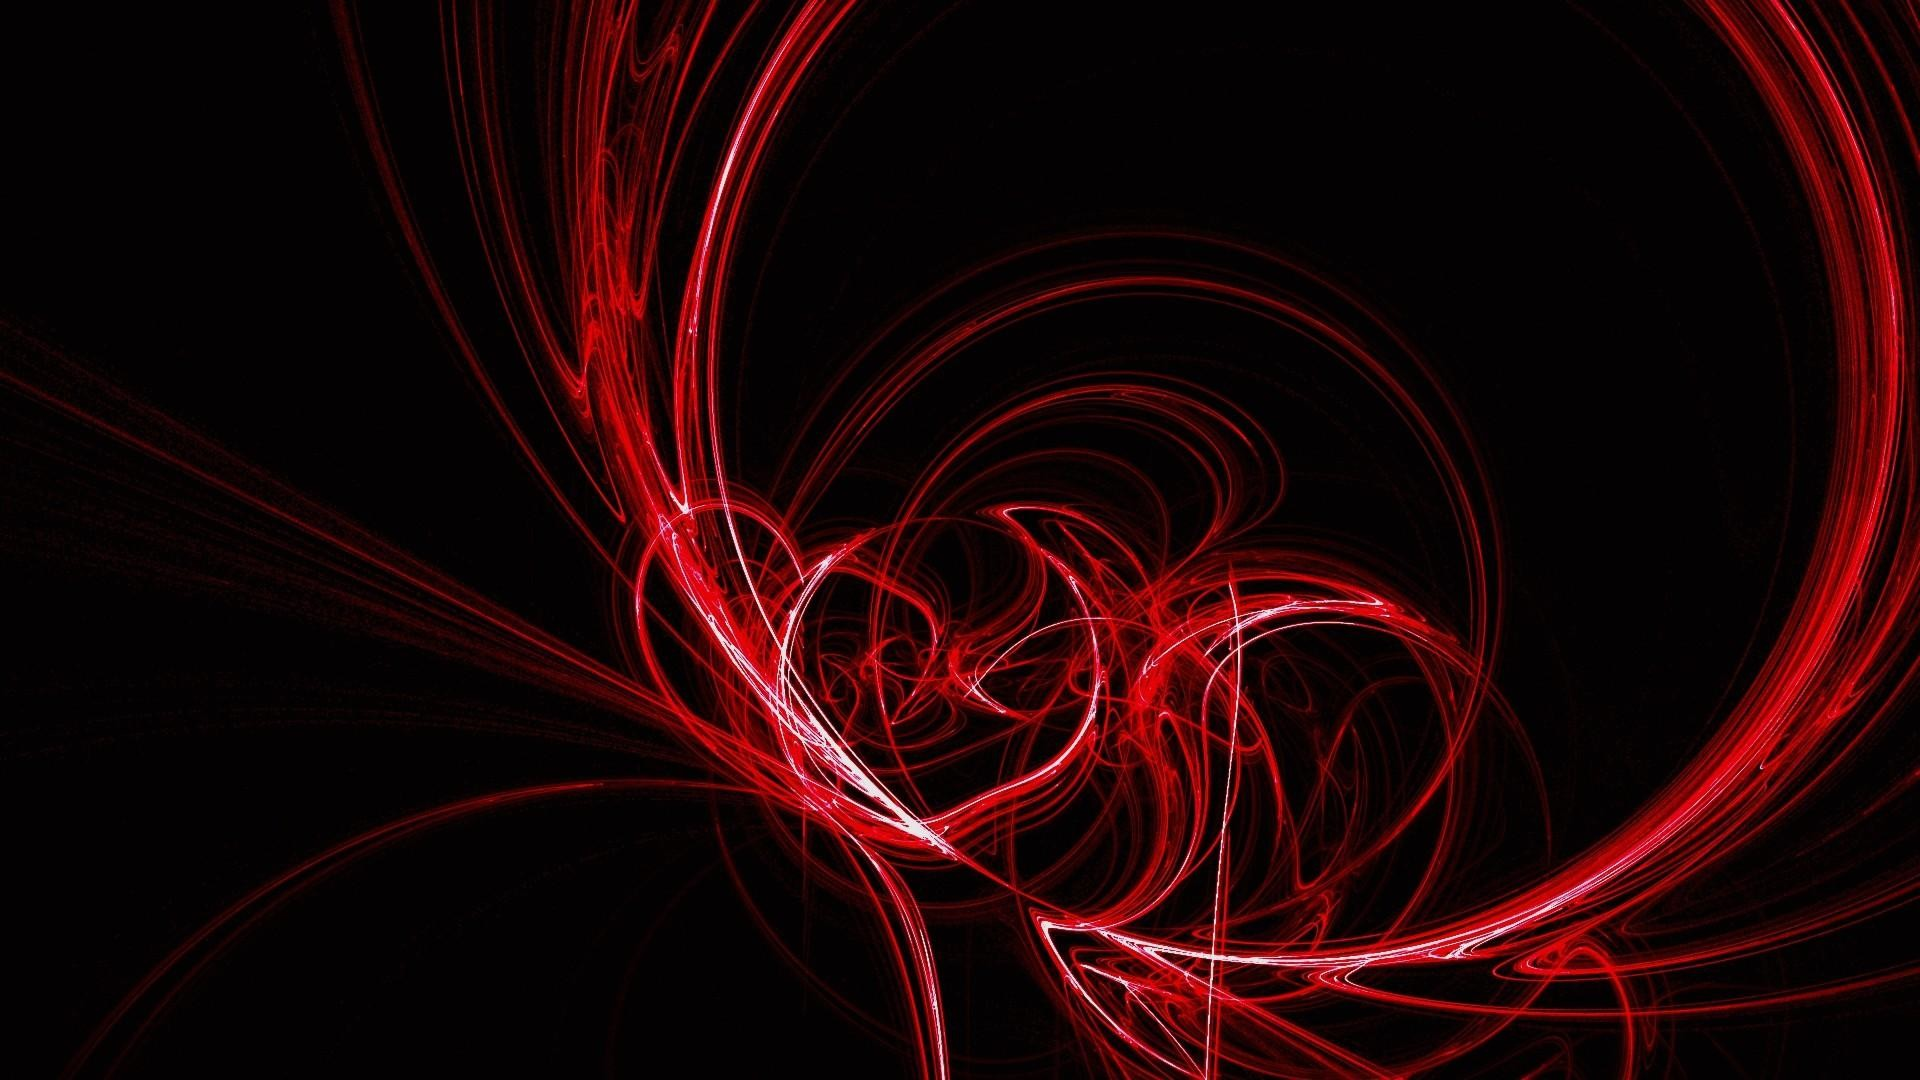 1920x1080 Red Abstract Artwork Wallpaper 28438